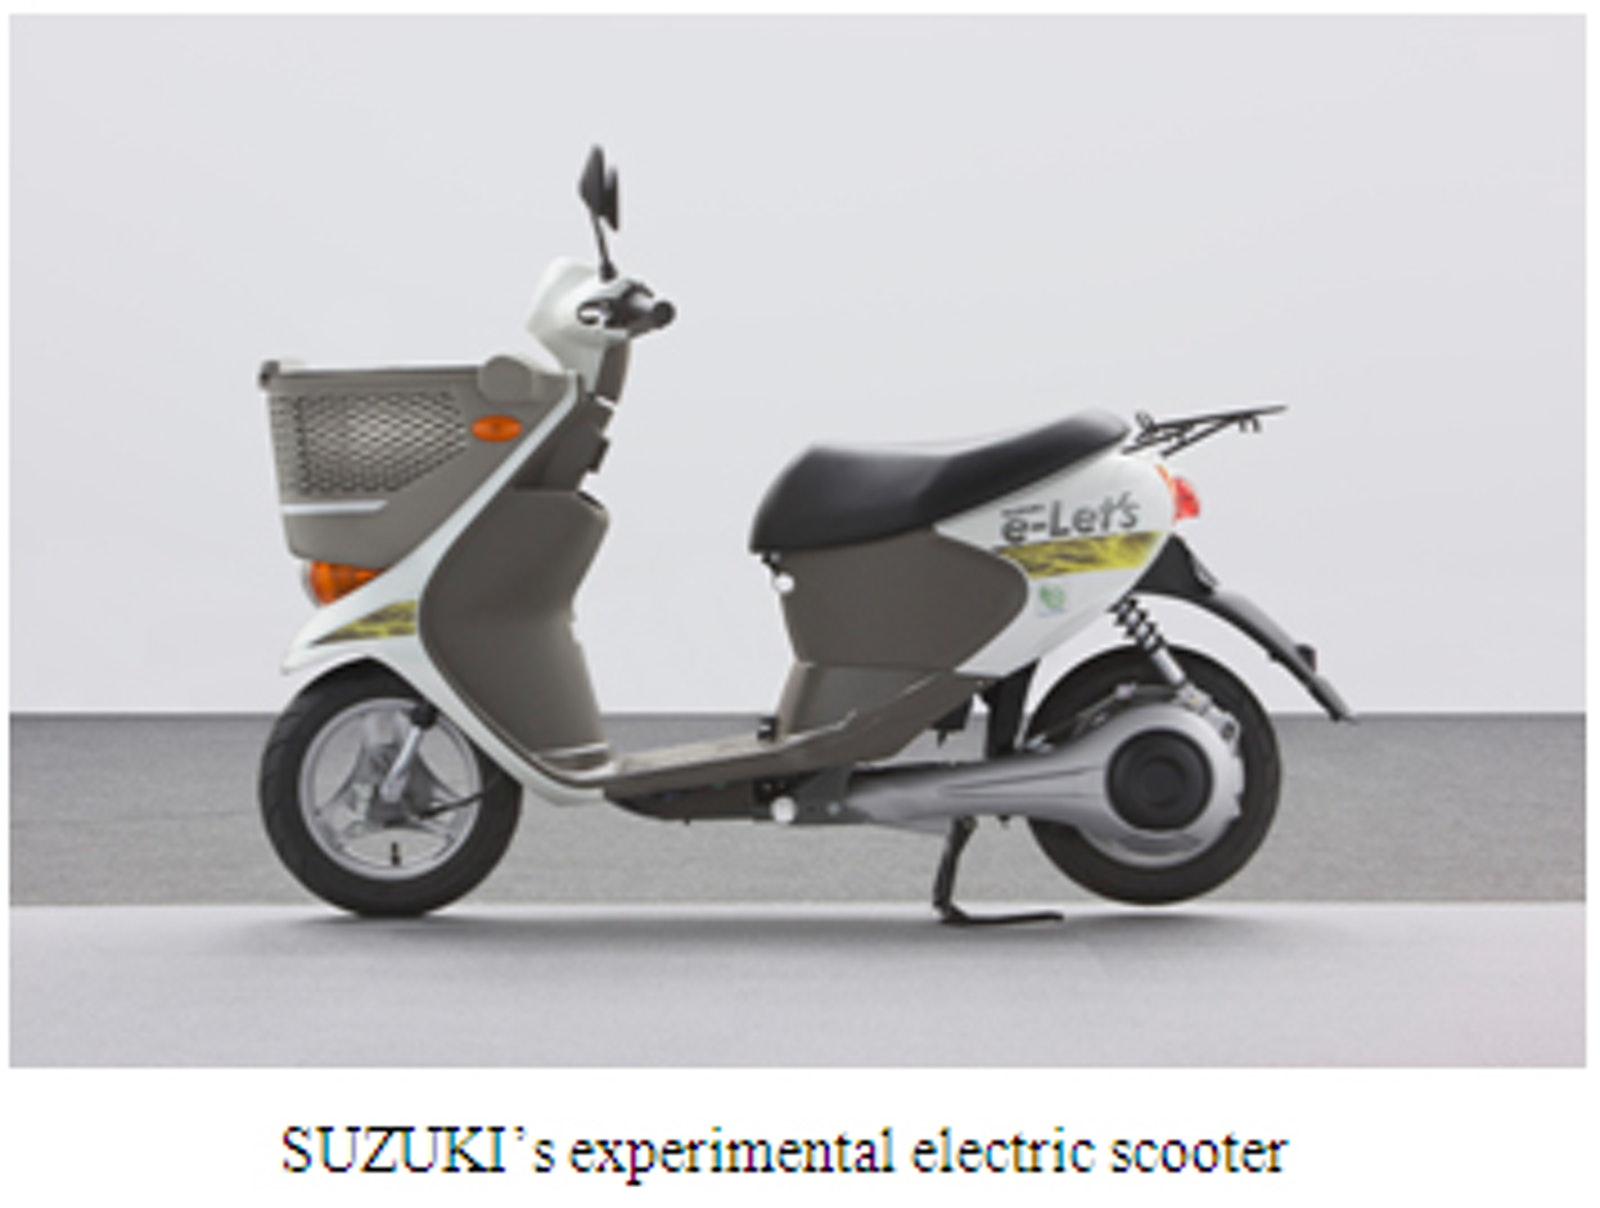 Sanyo Suzuki Co Develop System For Experimental Electric Scooters